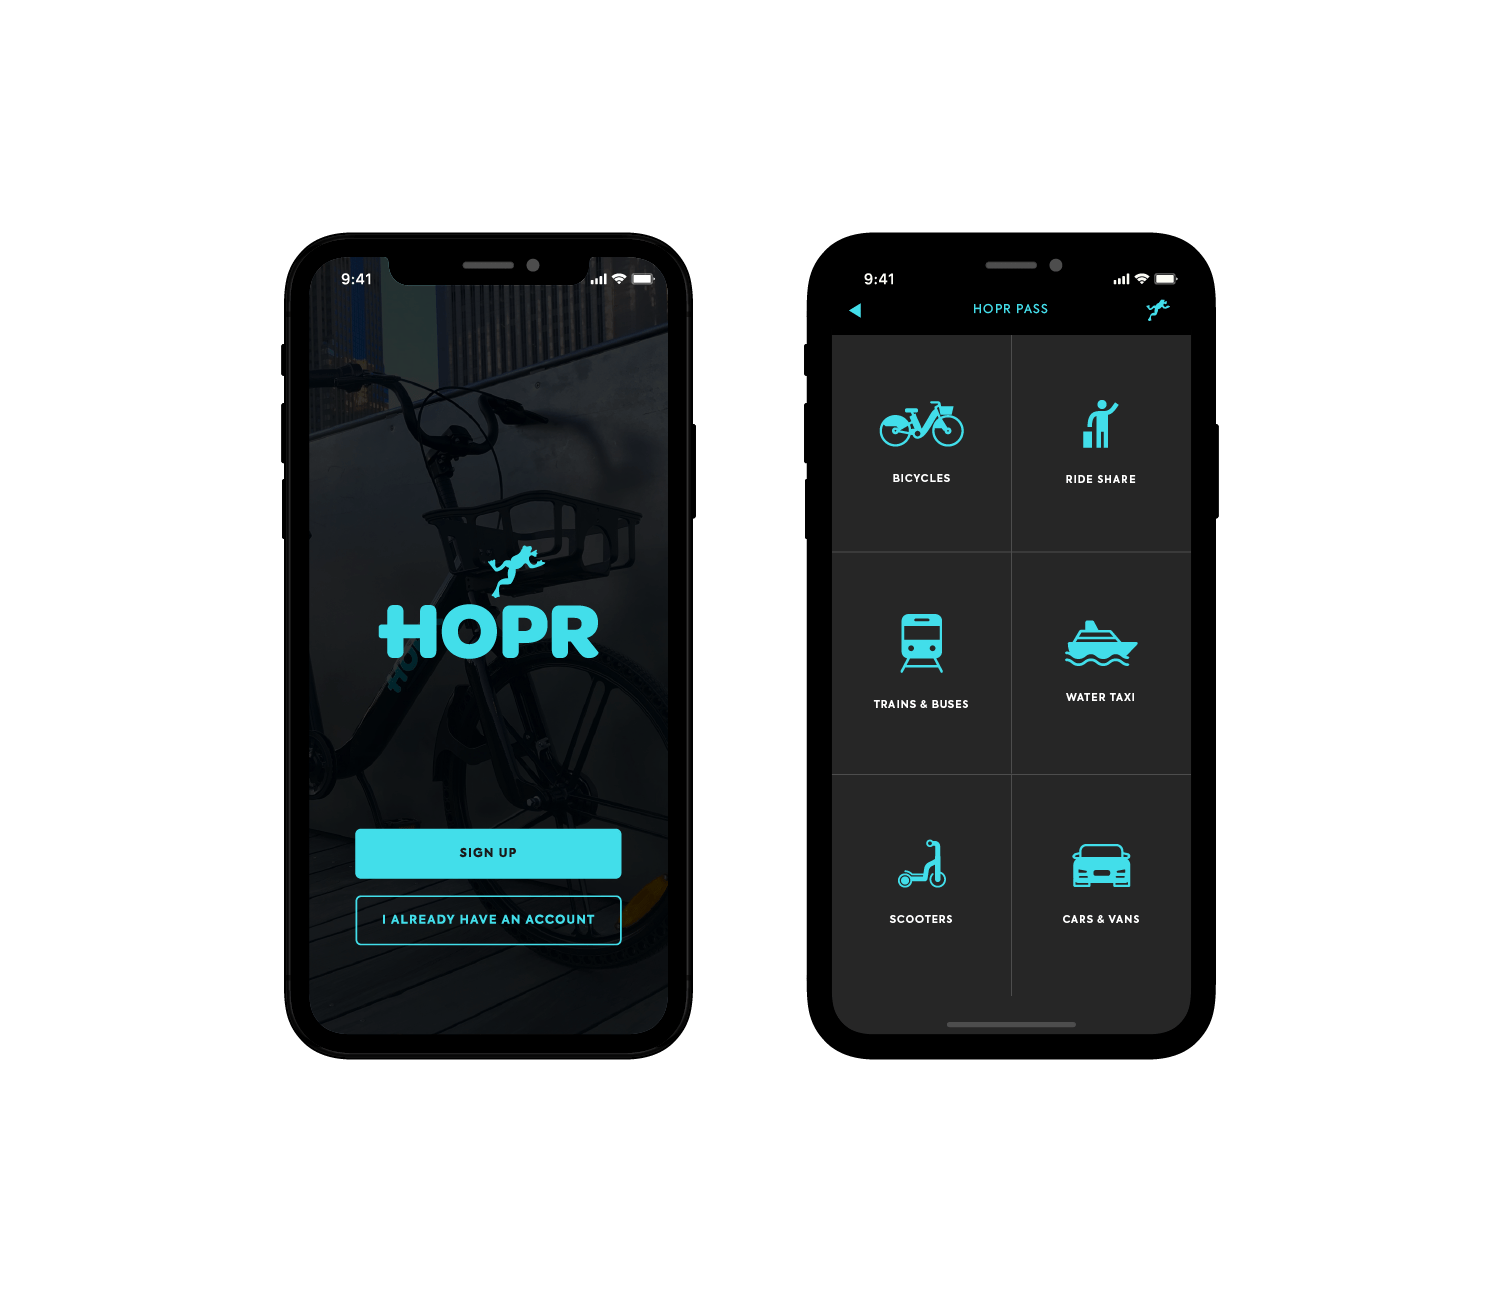 download the HOPR Transit app and sign up